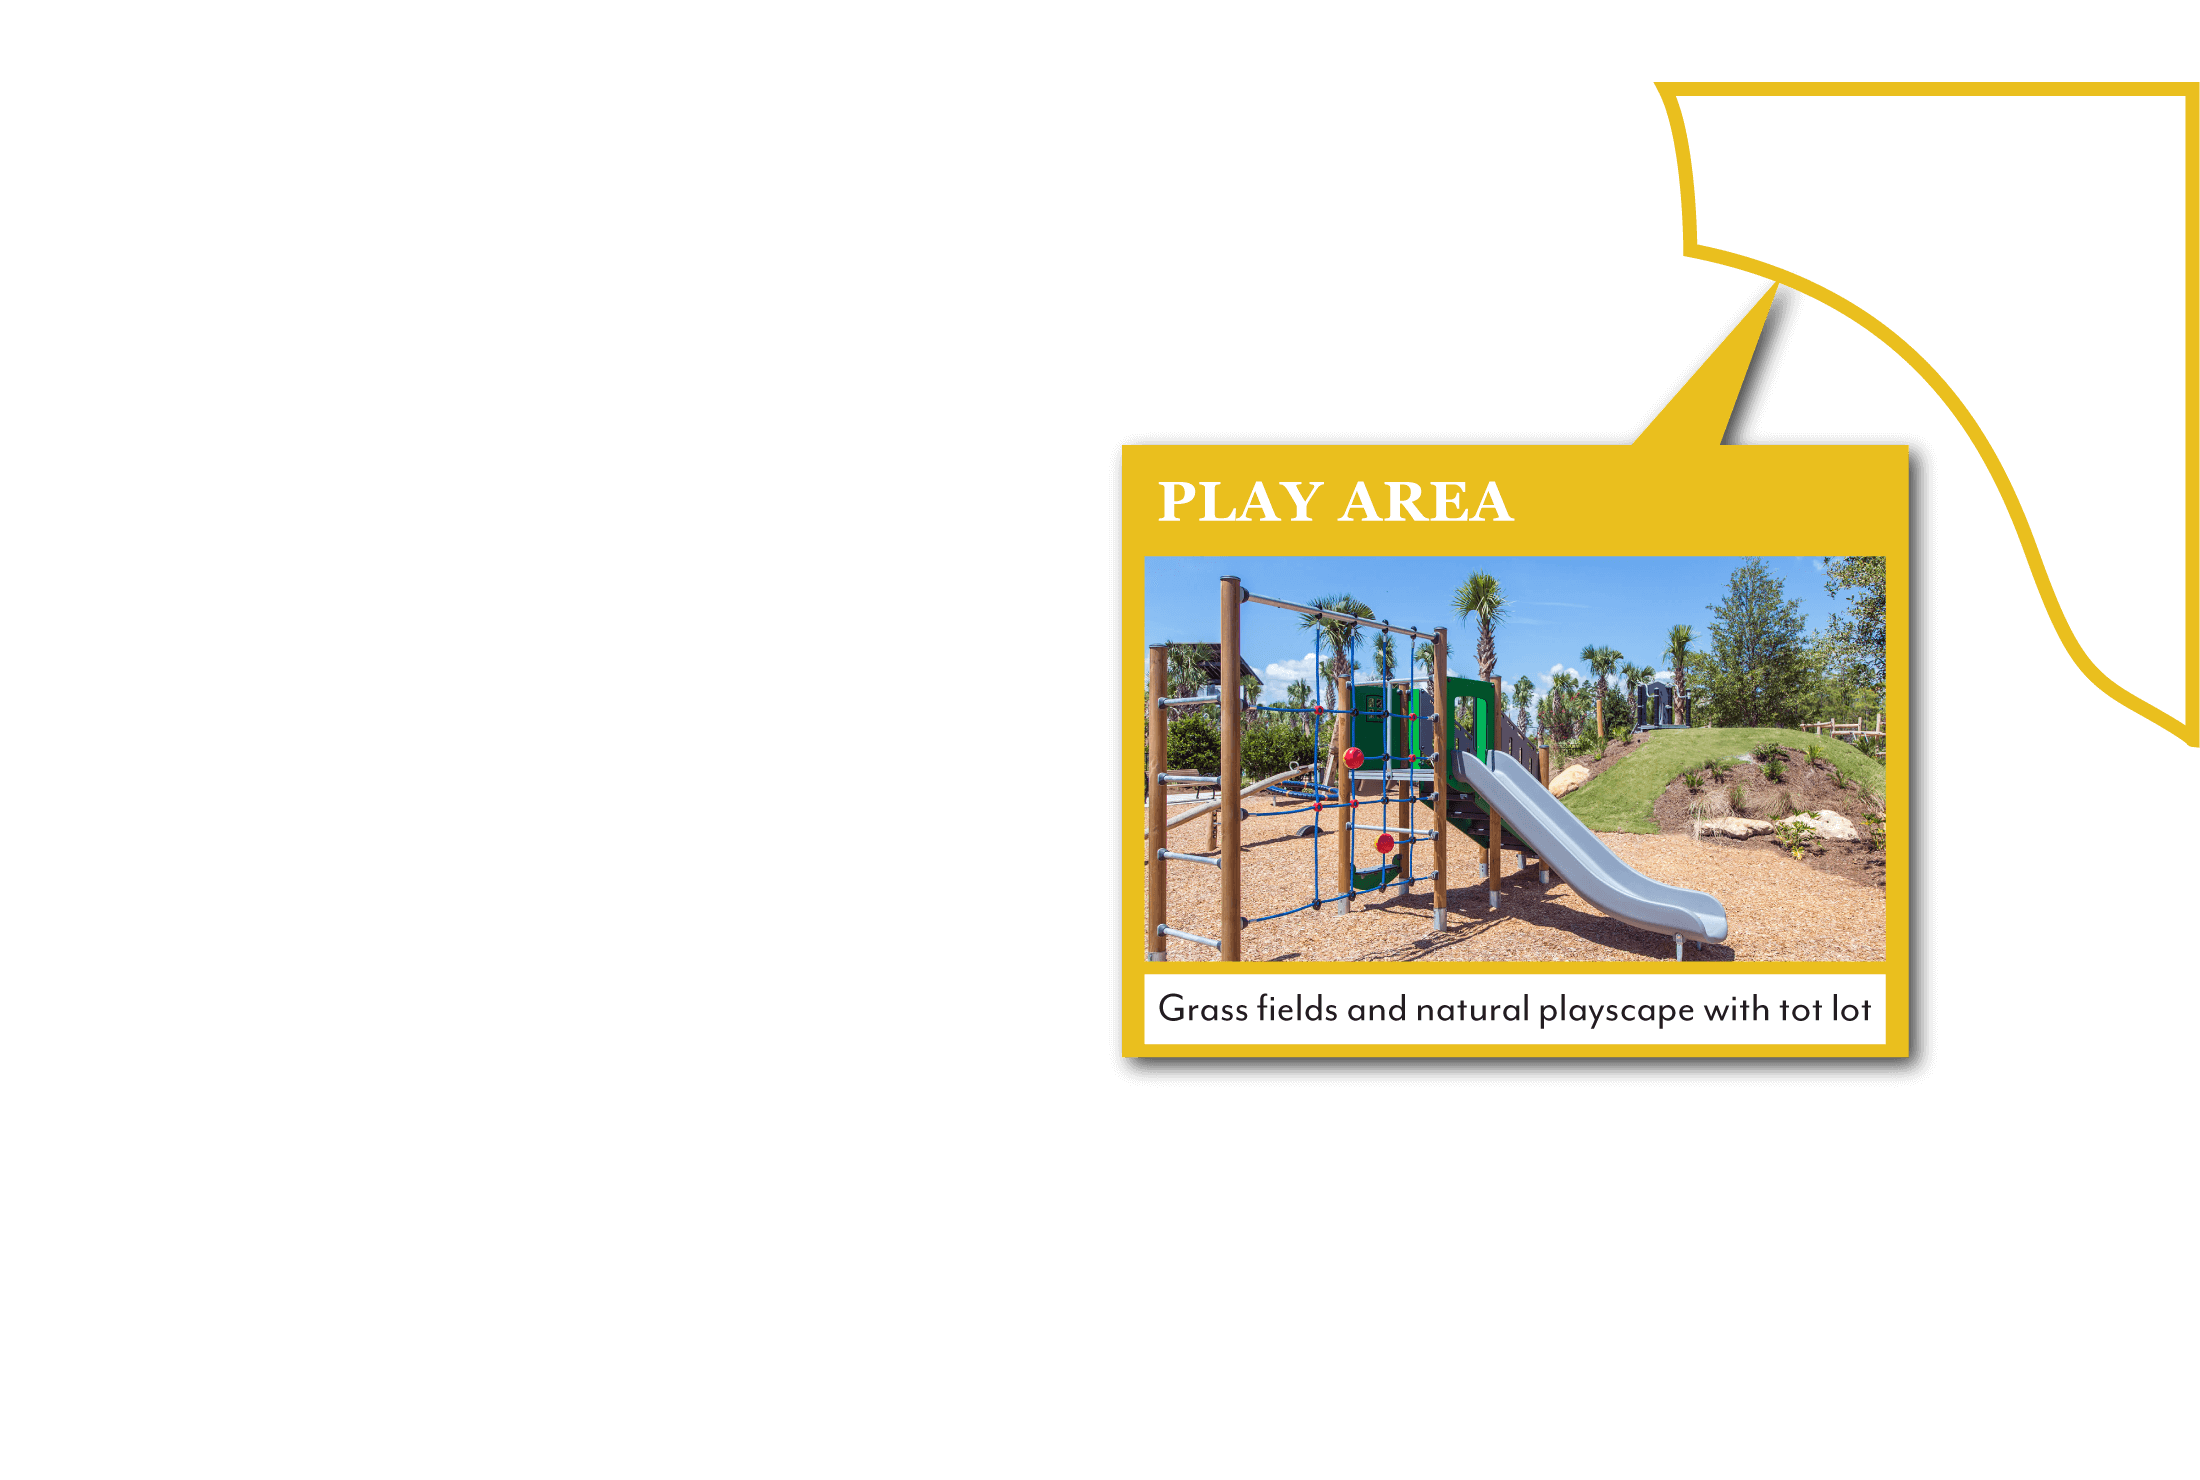 Photo of the Shearwater community Play Area